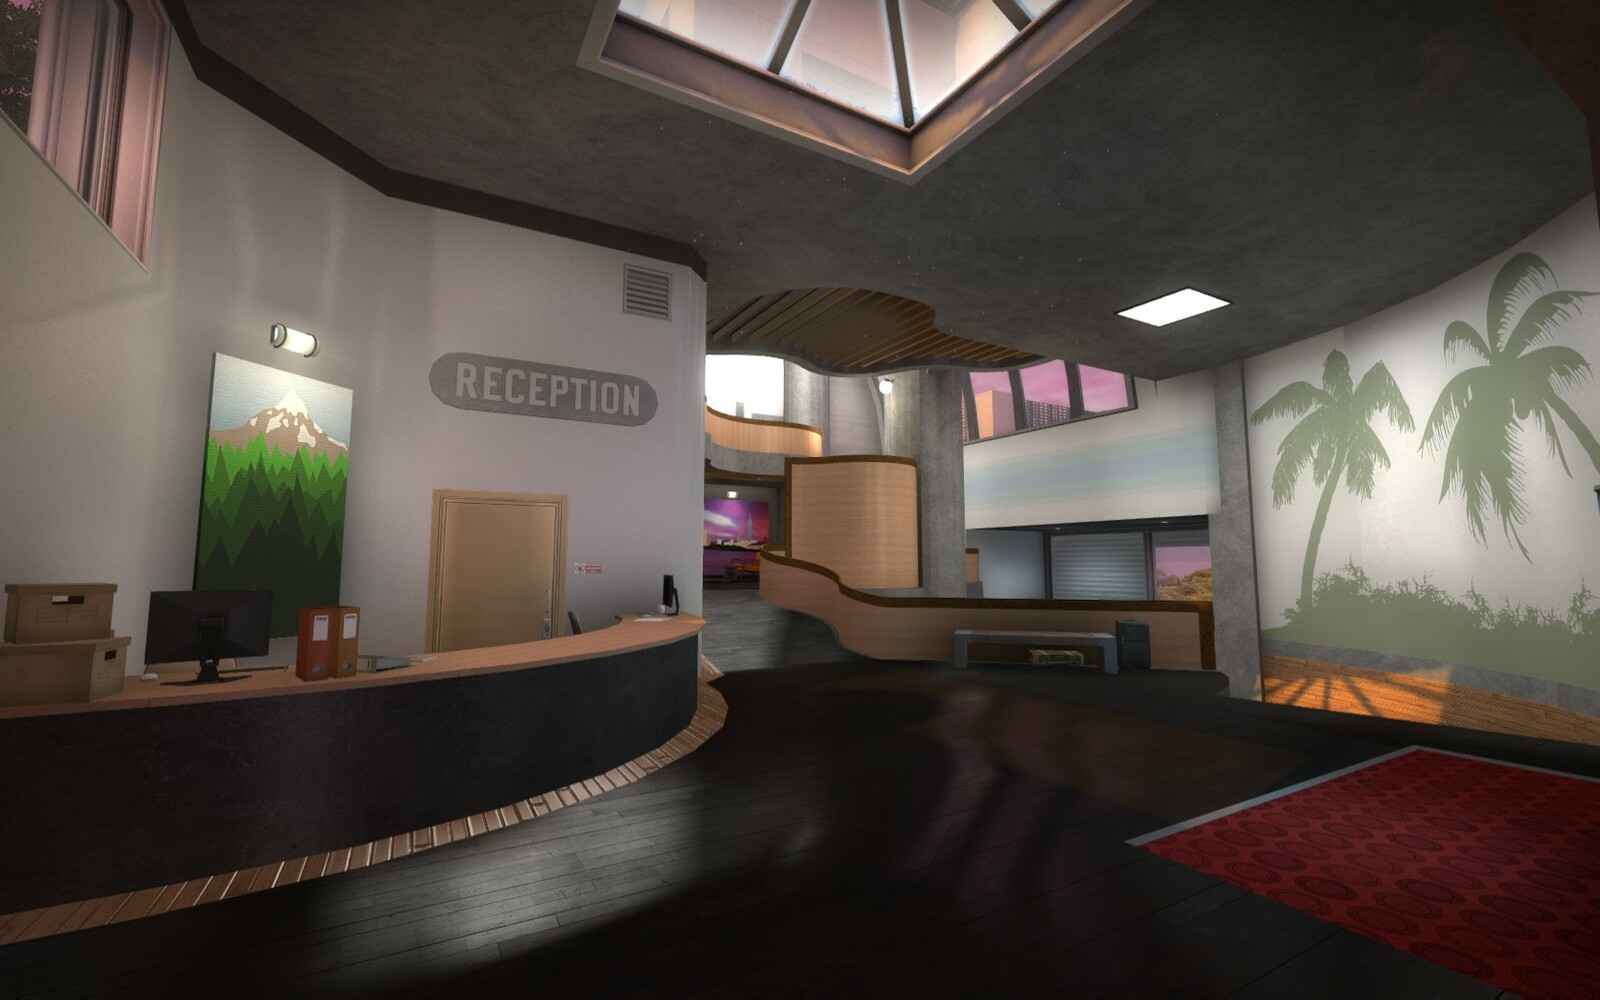 The lobby takes a very unconventional approach to direction. Both the passage to the left and the the stairs on the right are ahead of the player so no major turns need to be made when starting out.